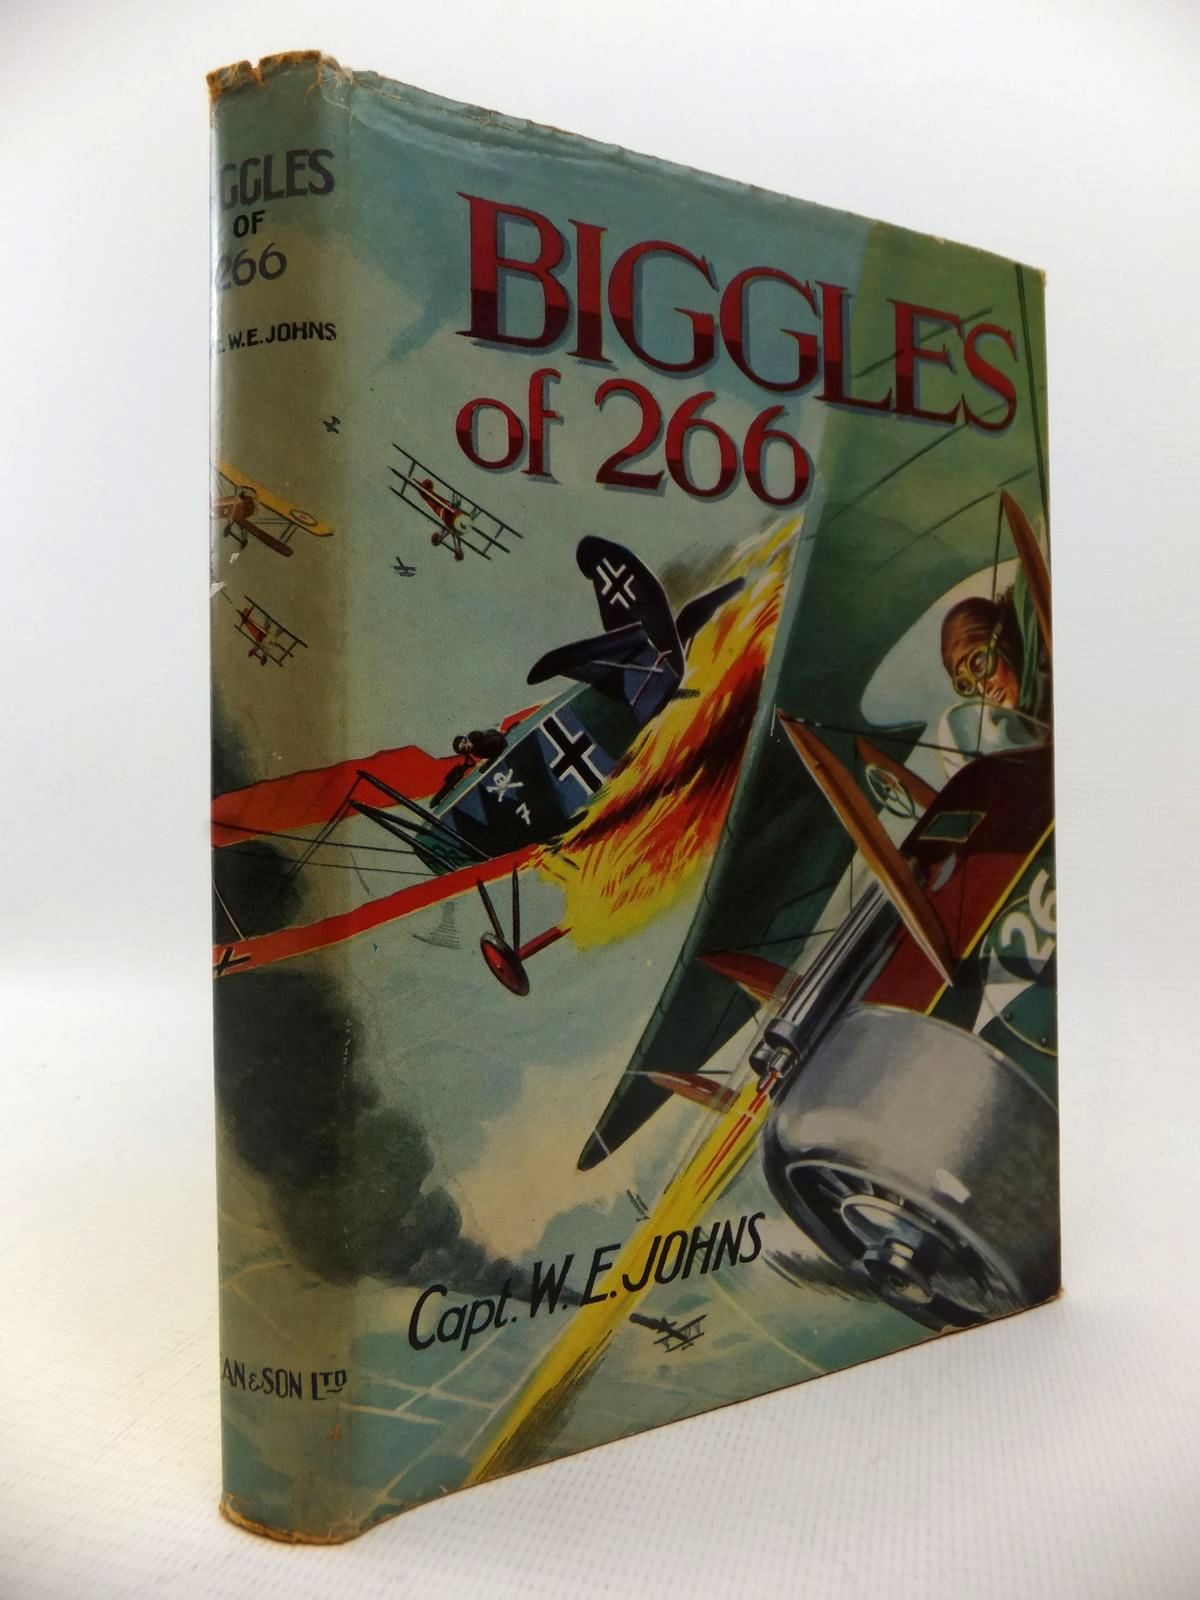 Photo of BIGGLES OF 266 written by Johns, W.E. published by Dean & Son Ltd. (STOCK CODE: 1813788)  for sale by Stella & Rose's Books